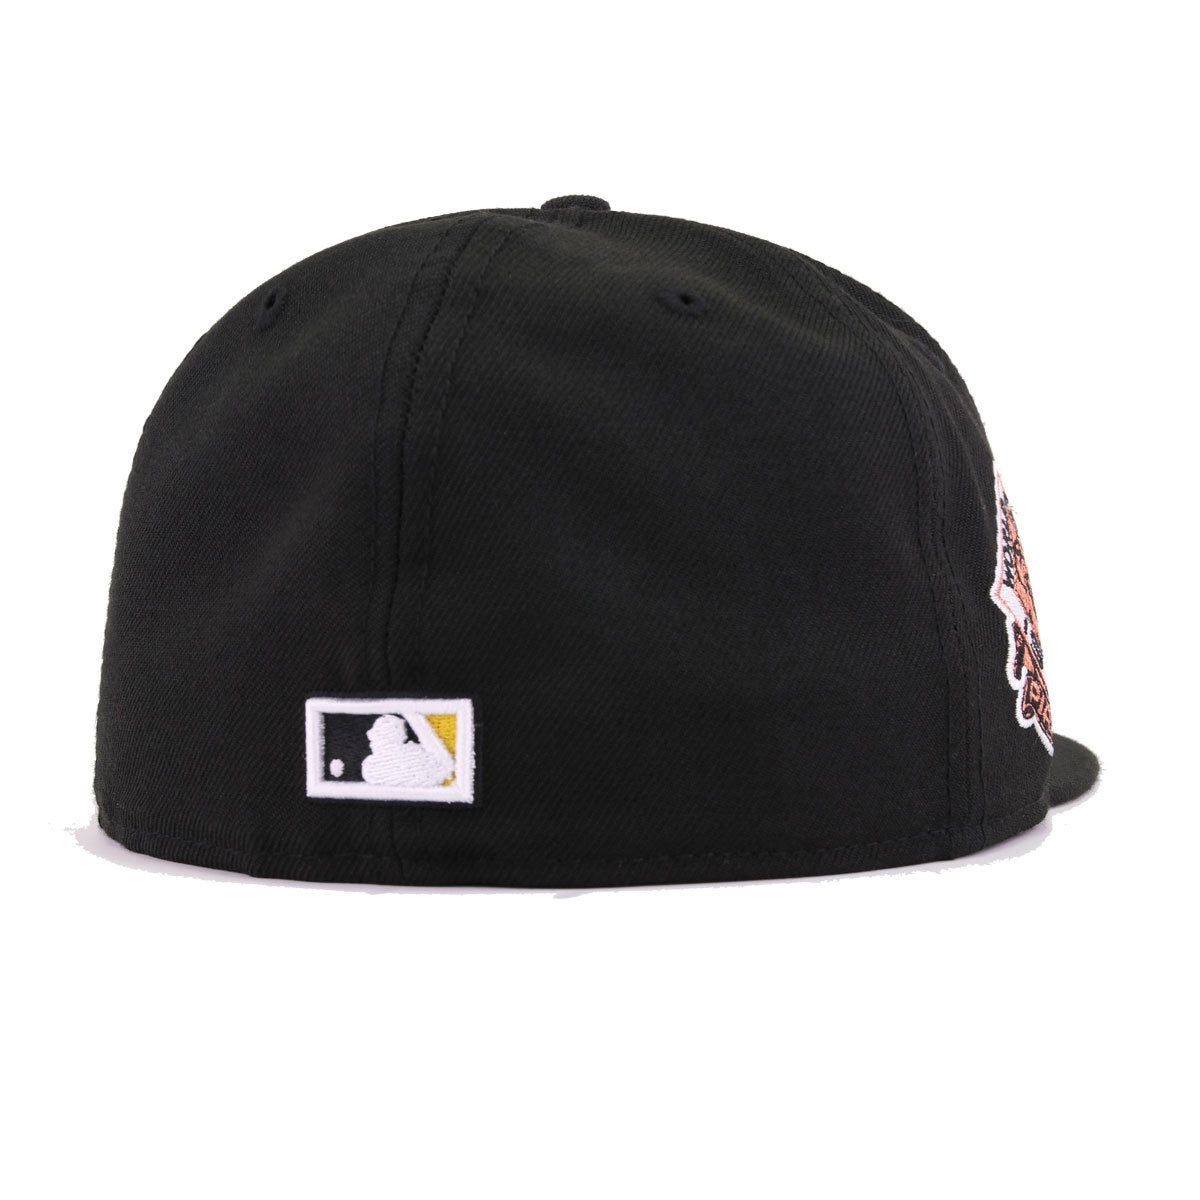 Pittsburgh Pirates Black 1960 World Series New Era 59Fifty Fitted